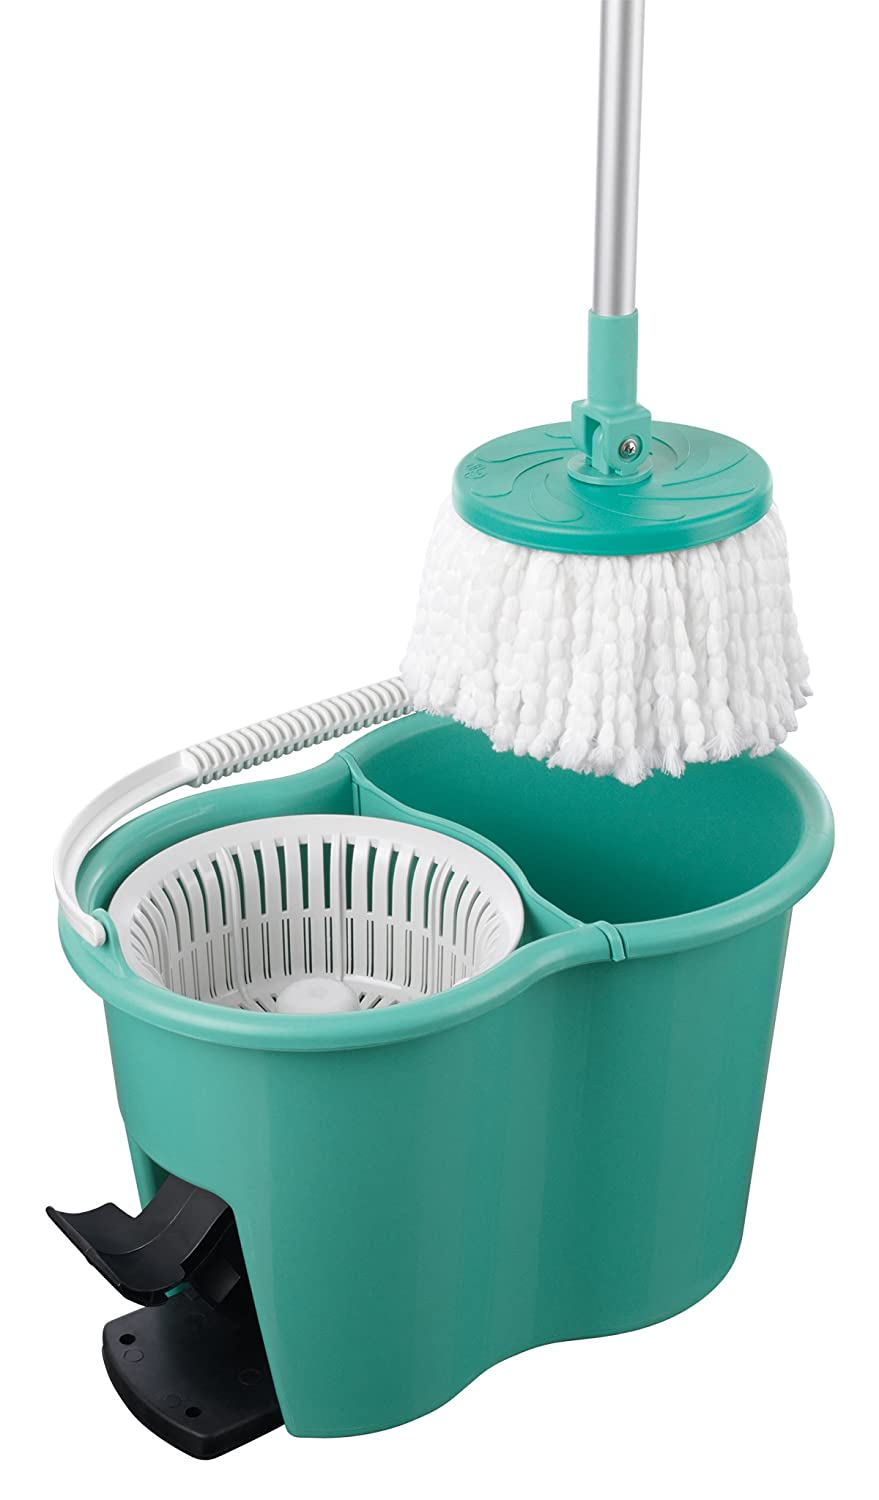 Mr. Maxx Filter Mop